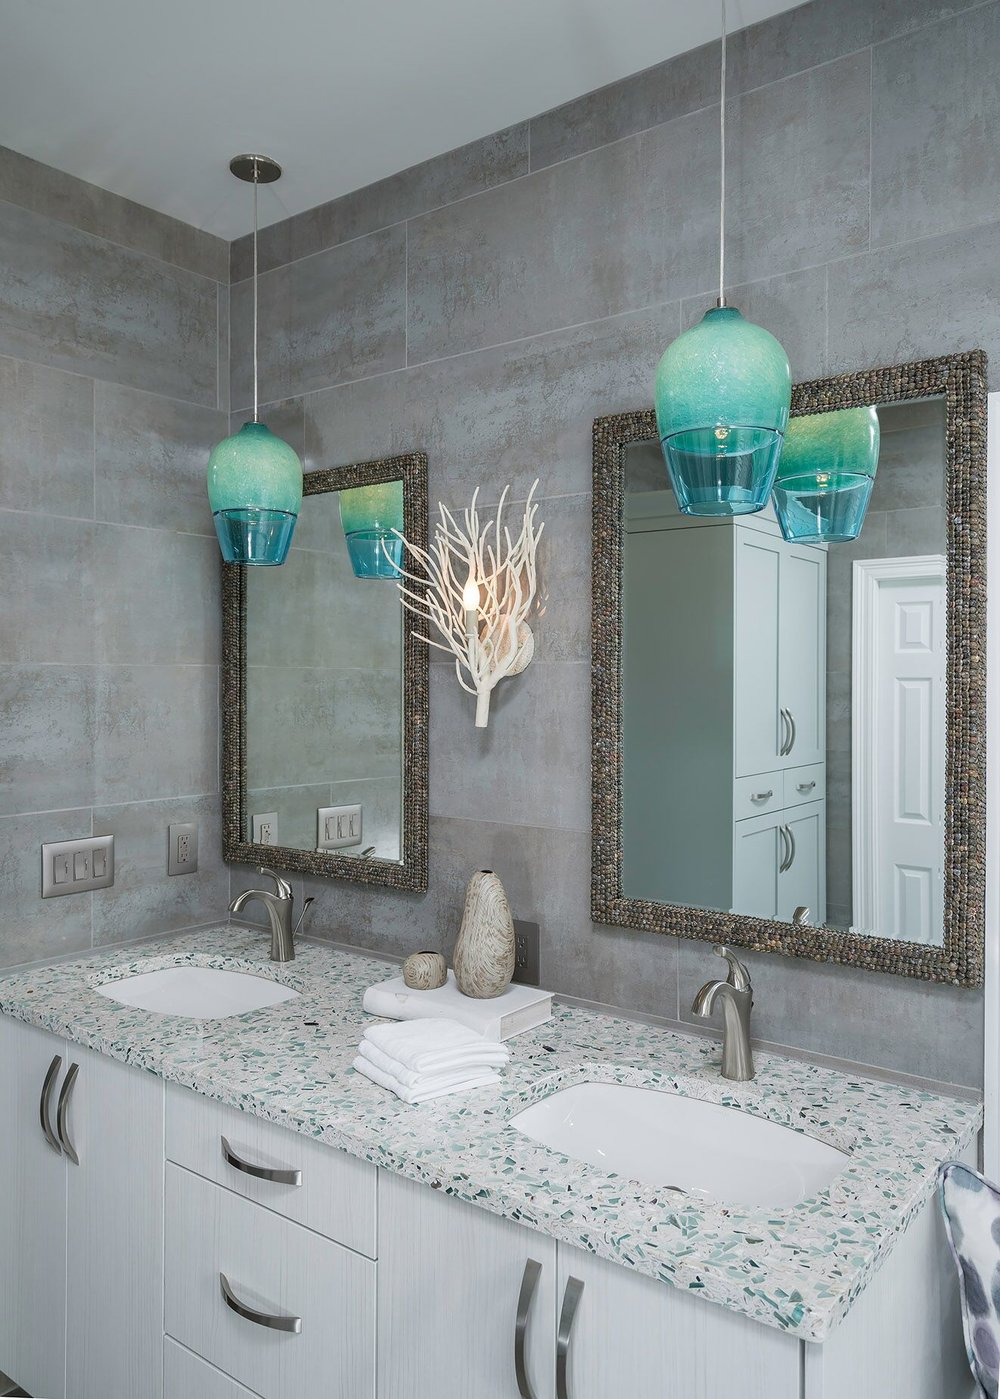 DESIGNER SPOTLIGHT - Cheryl Kees Clendenon #bathroomdesign #masterbath #coastalbathroom #vetrazzo